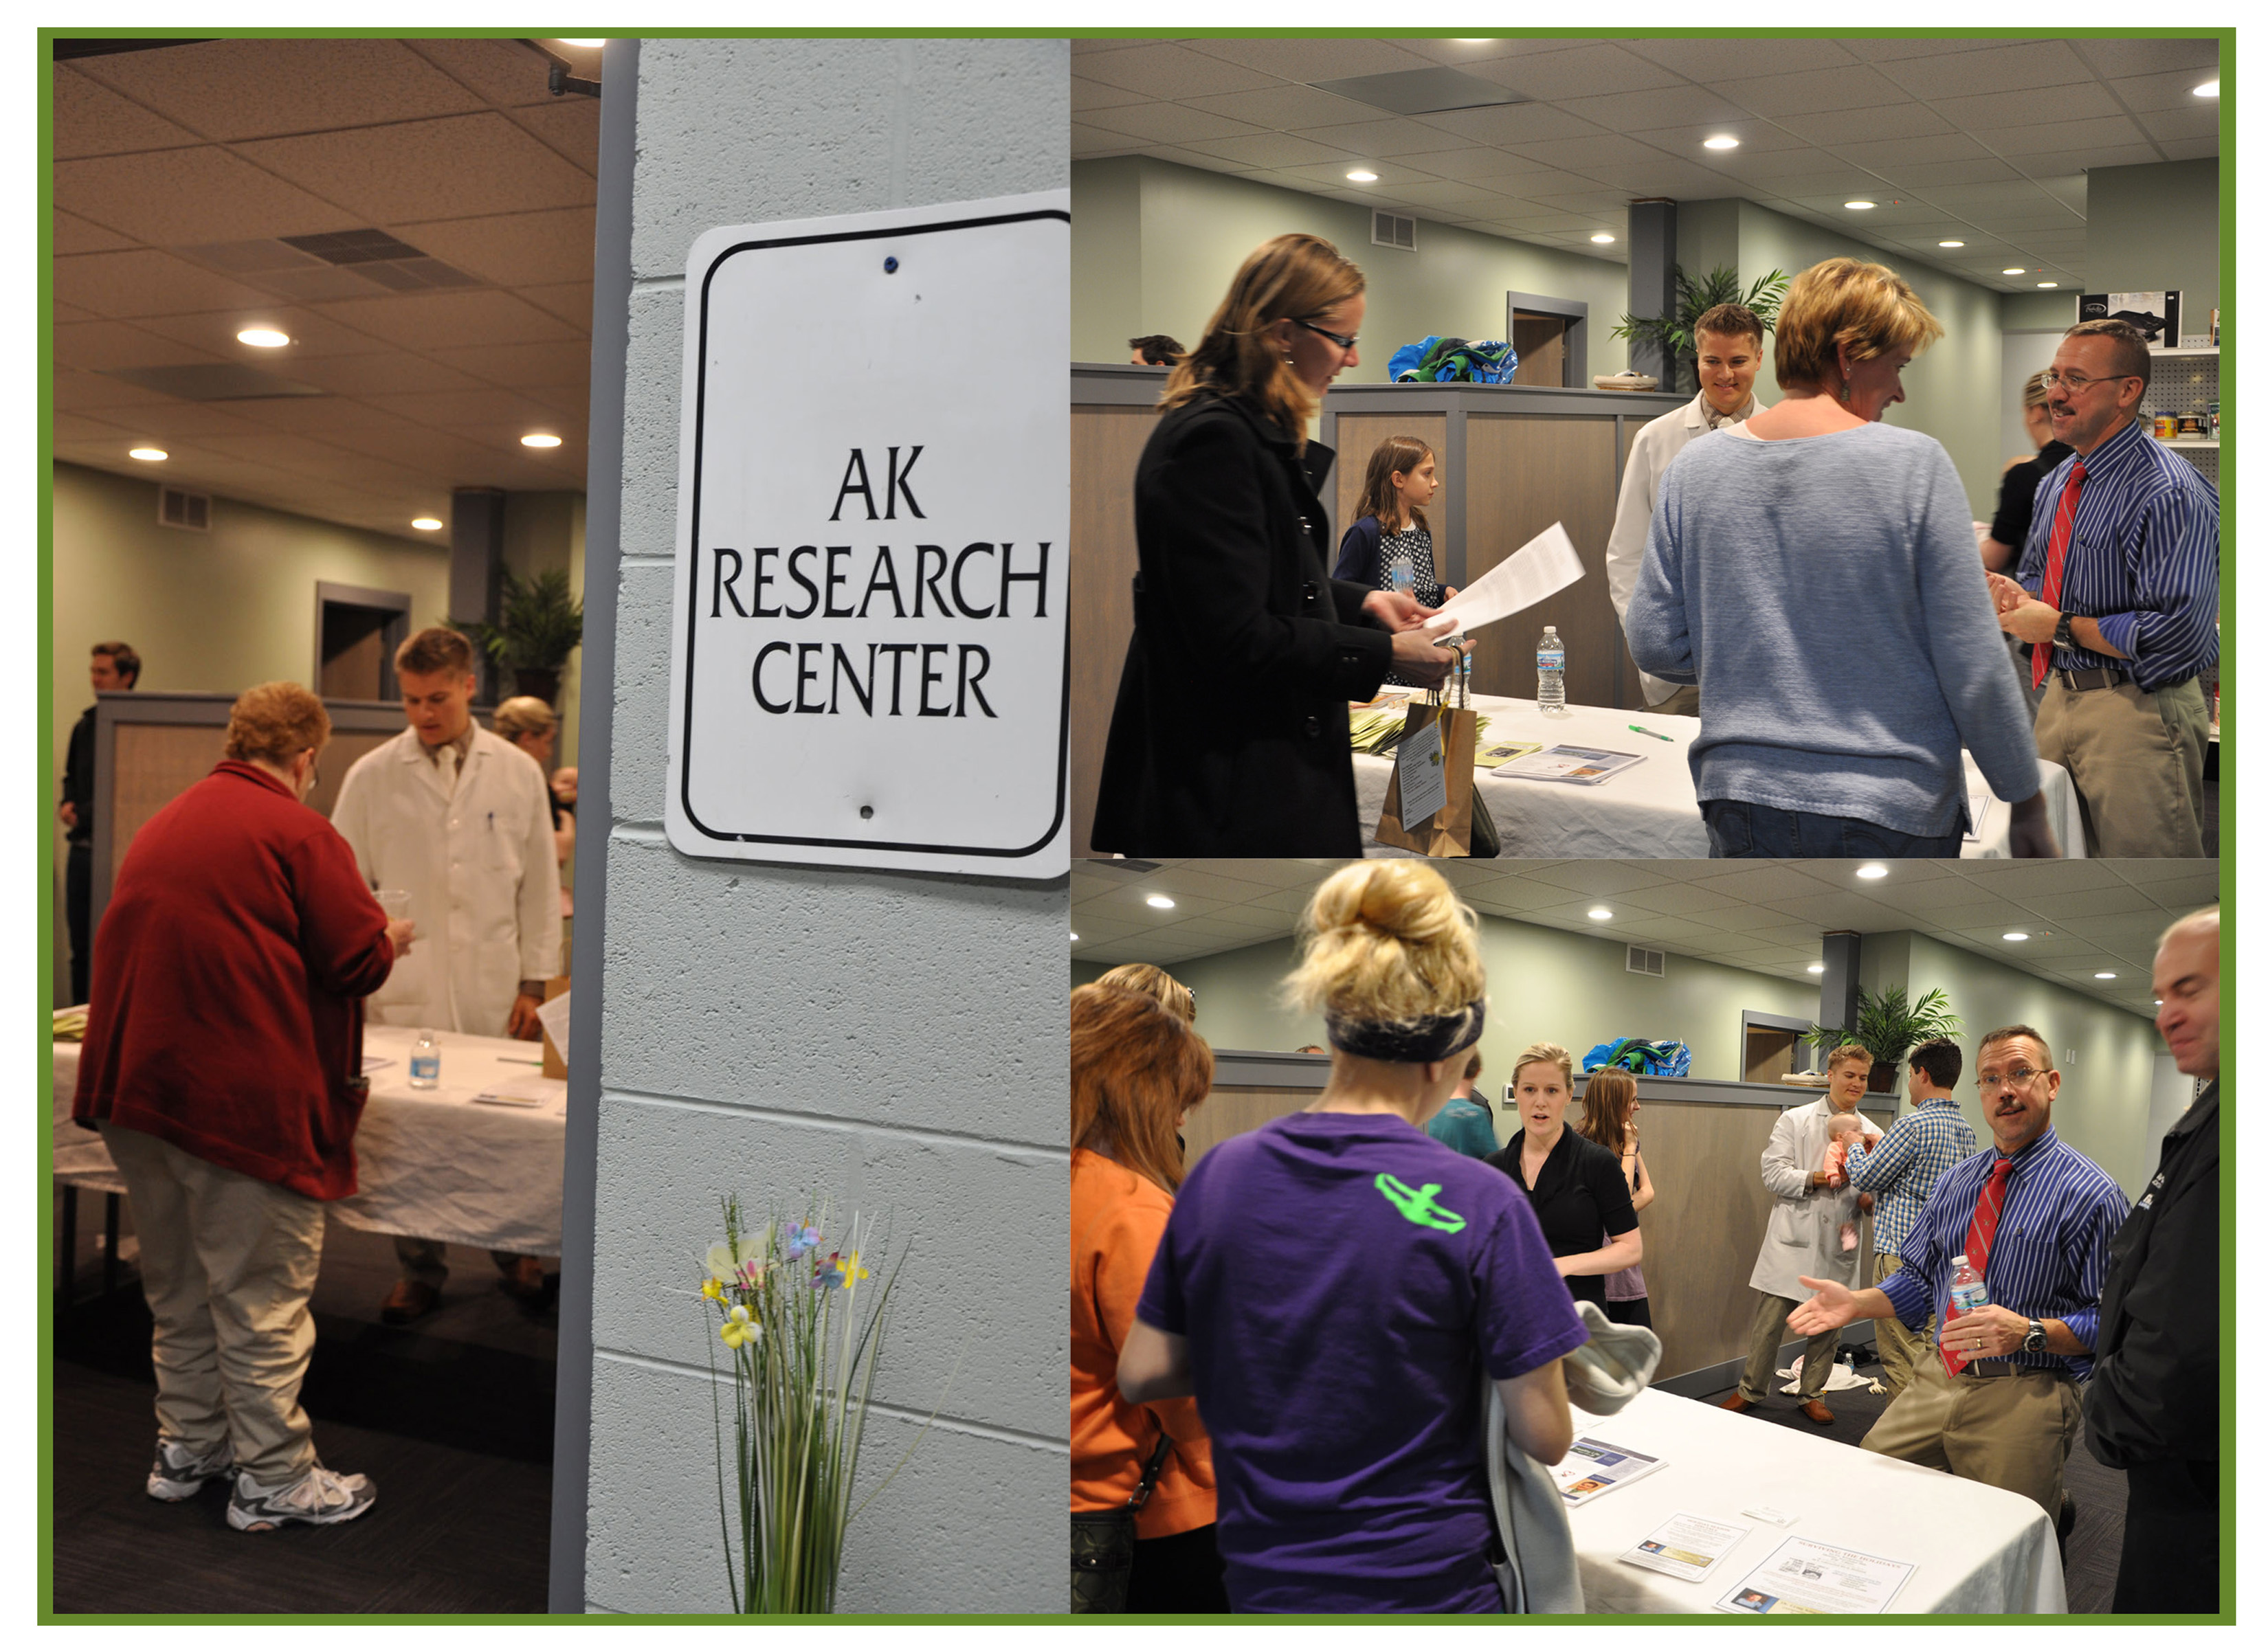 AK Research Center